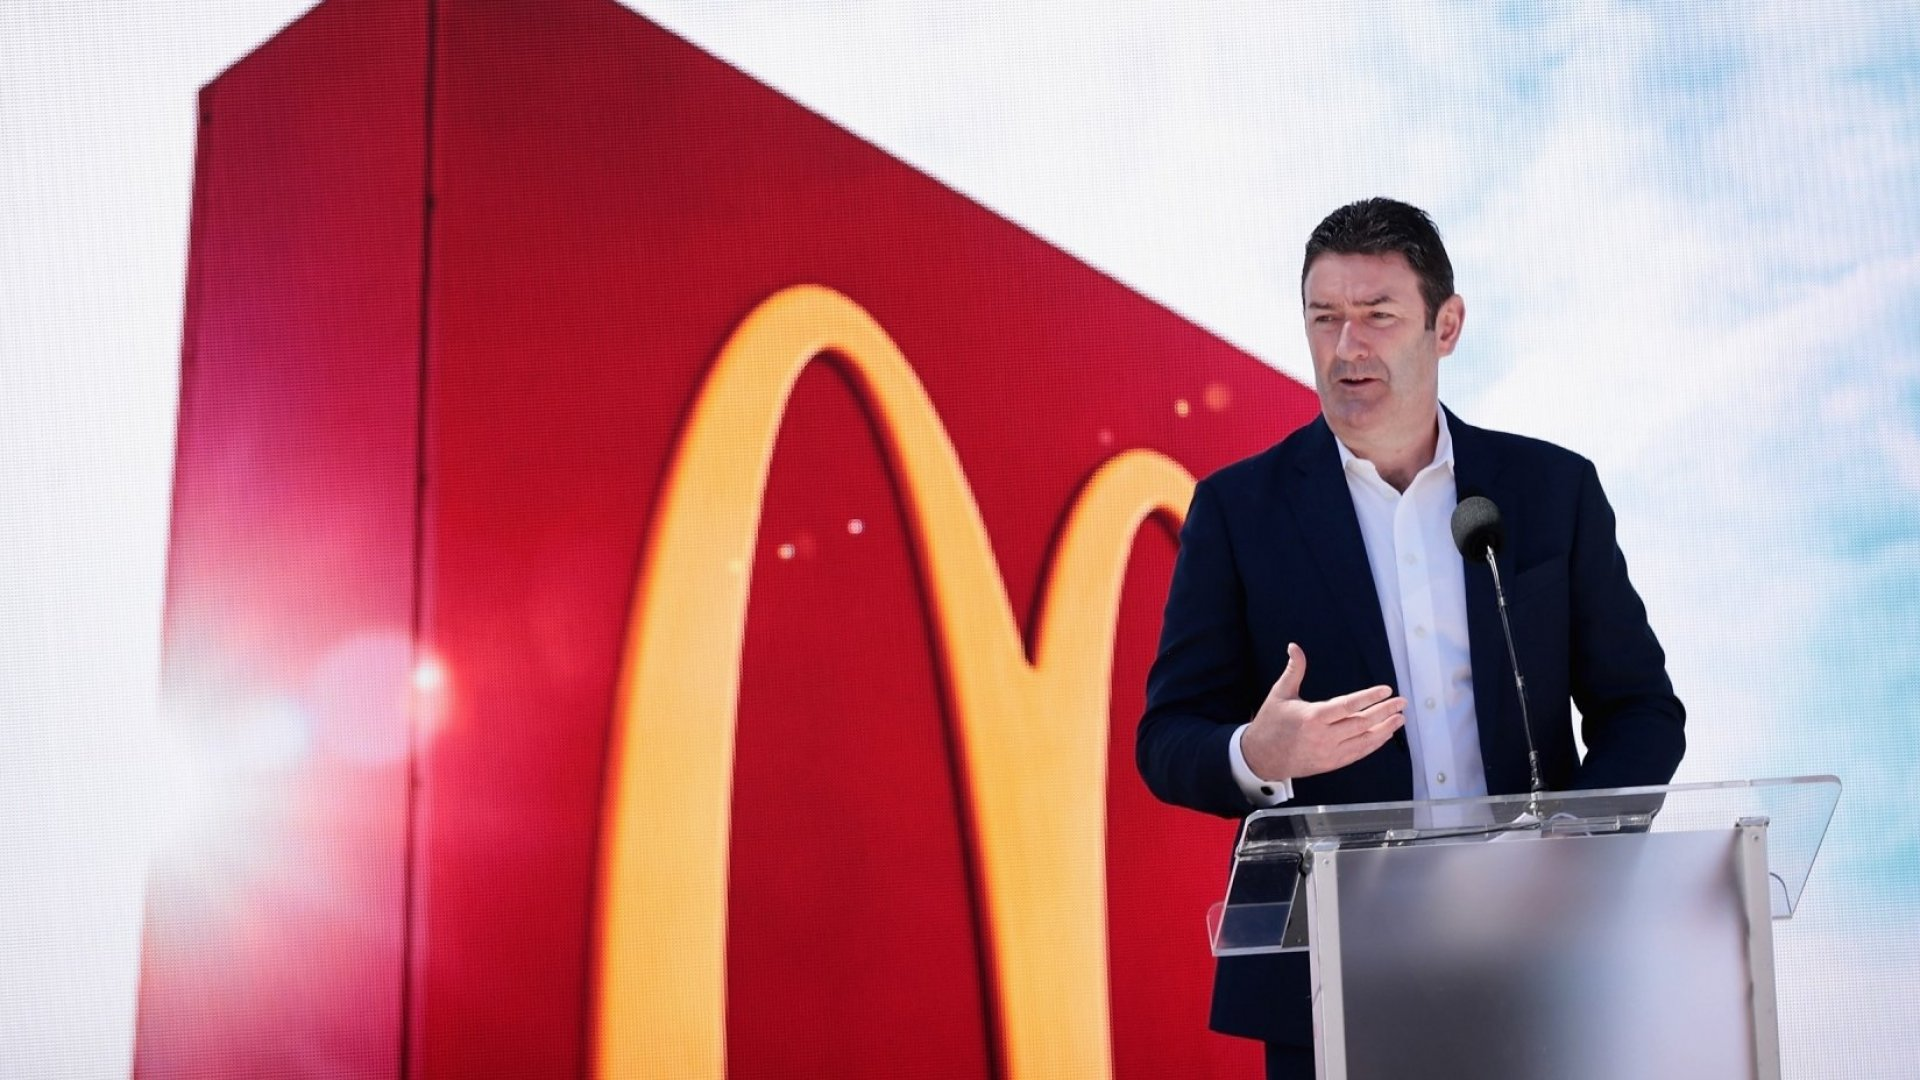 McDonald's Just Fired Its CEO. The Way McDonald's Announced the News Is Fascinating